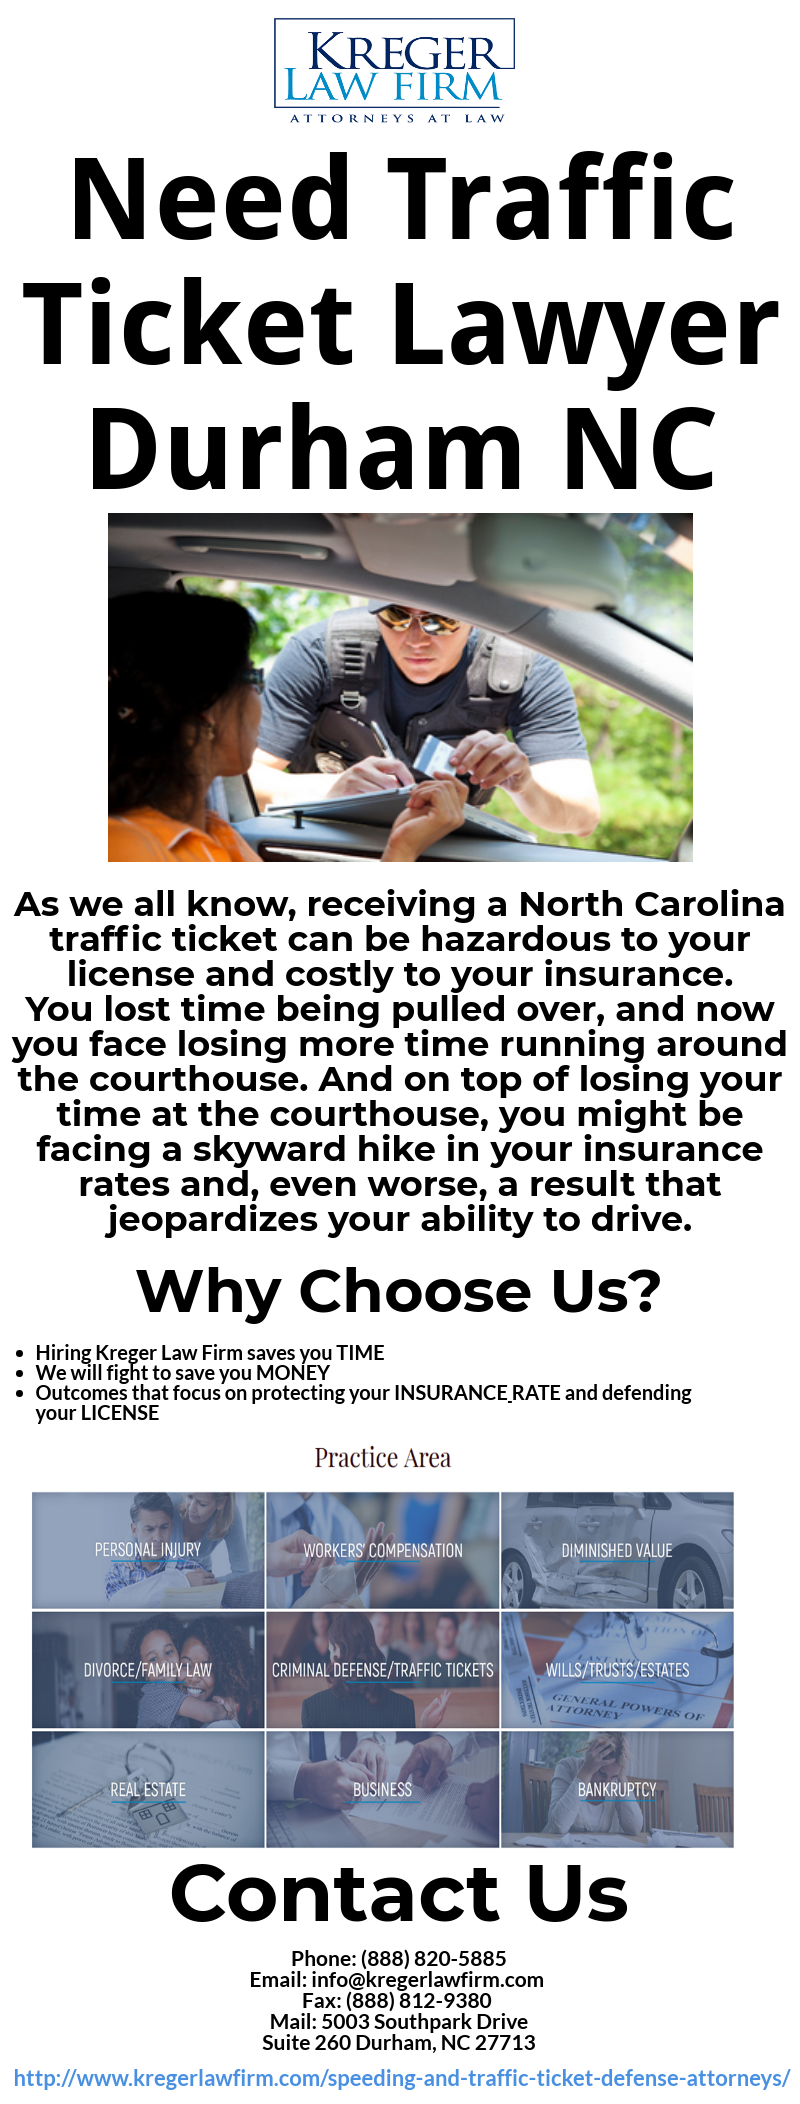 Pin By Kreger Lawfirm On Need Traffic Ticket Lawyer Durham Nc